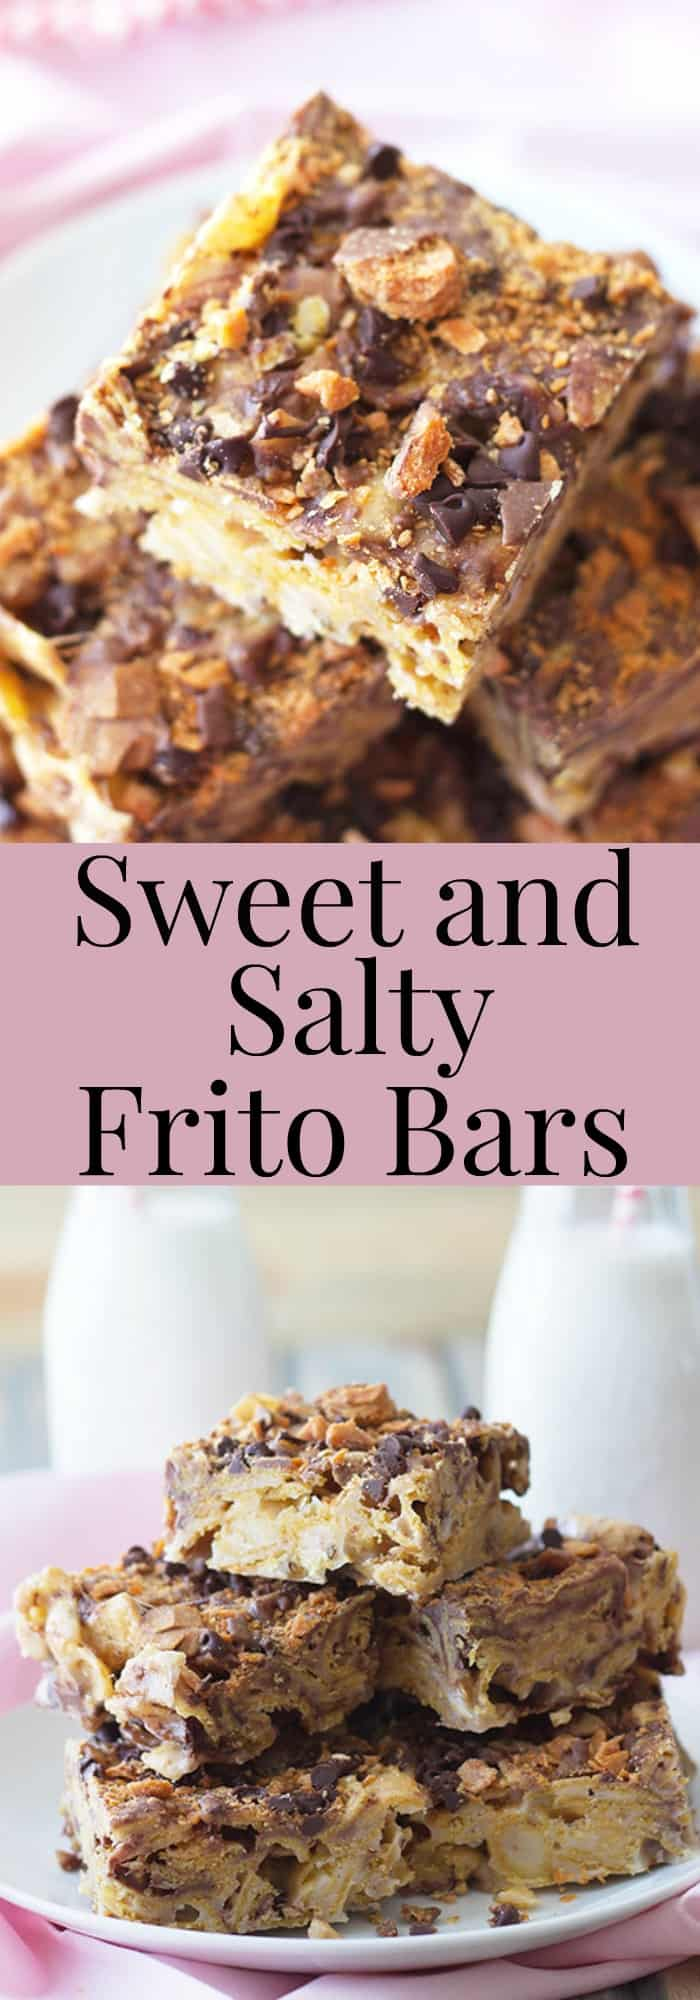 Sweet and Salty Frito Chip Bars -a perfect sweet and salty combo with chocolate chips and butterfinger pieces. | countrysidecravings.com